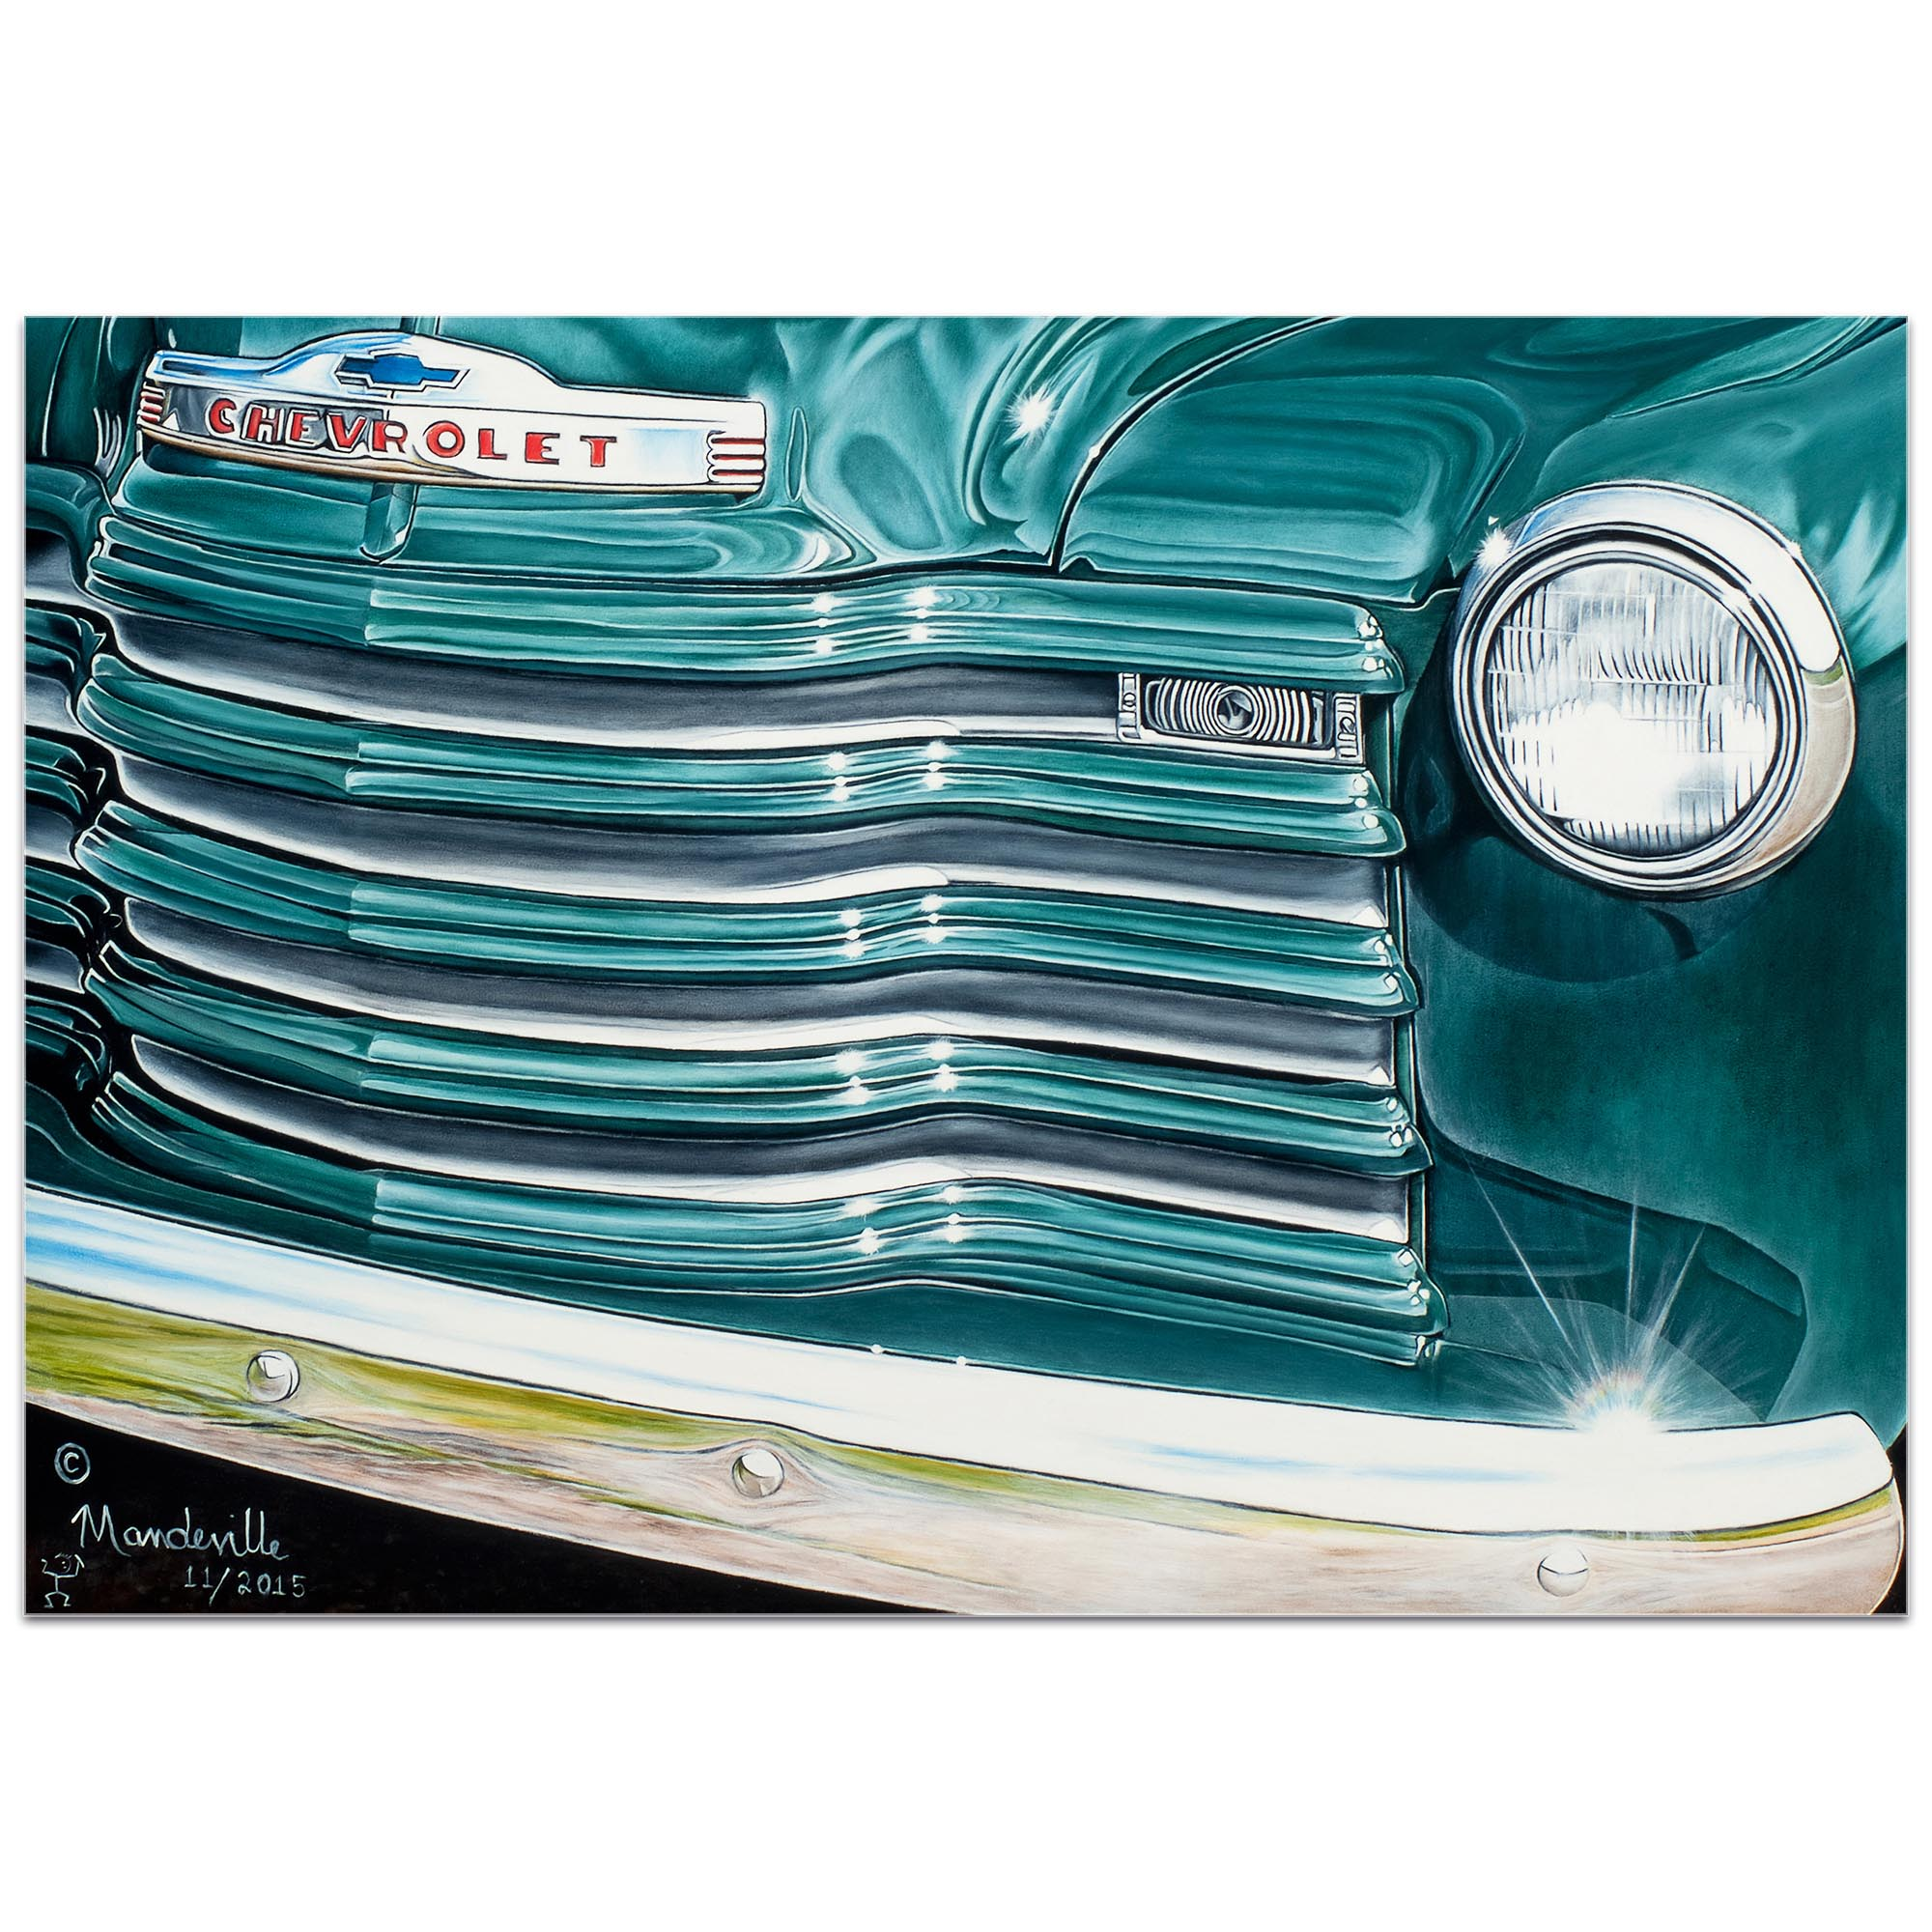 Americana Wall Art 'Grandpaz' - Classic Cars Decor on Metal or Plexiglass - Image 2